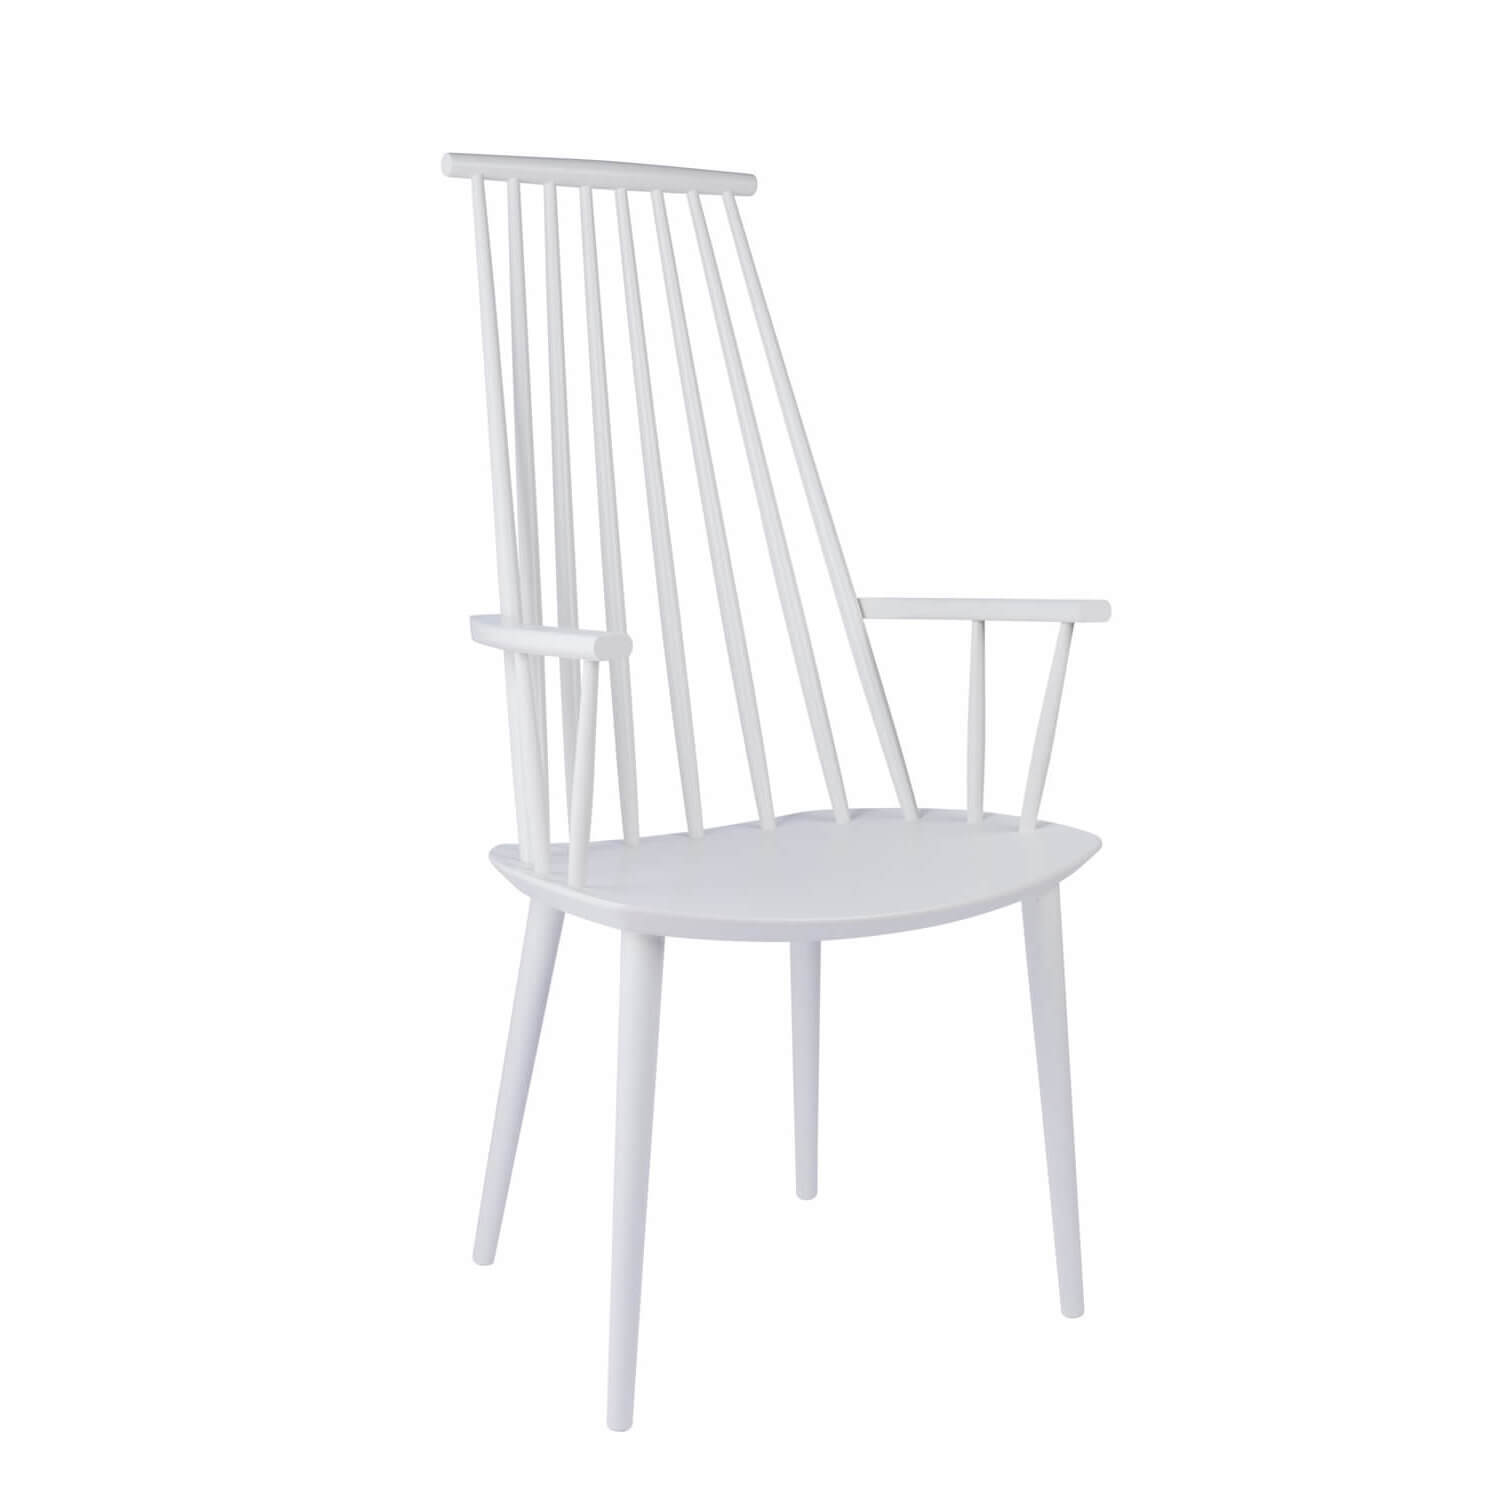 HAY – Chair J110 White